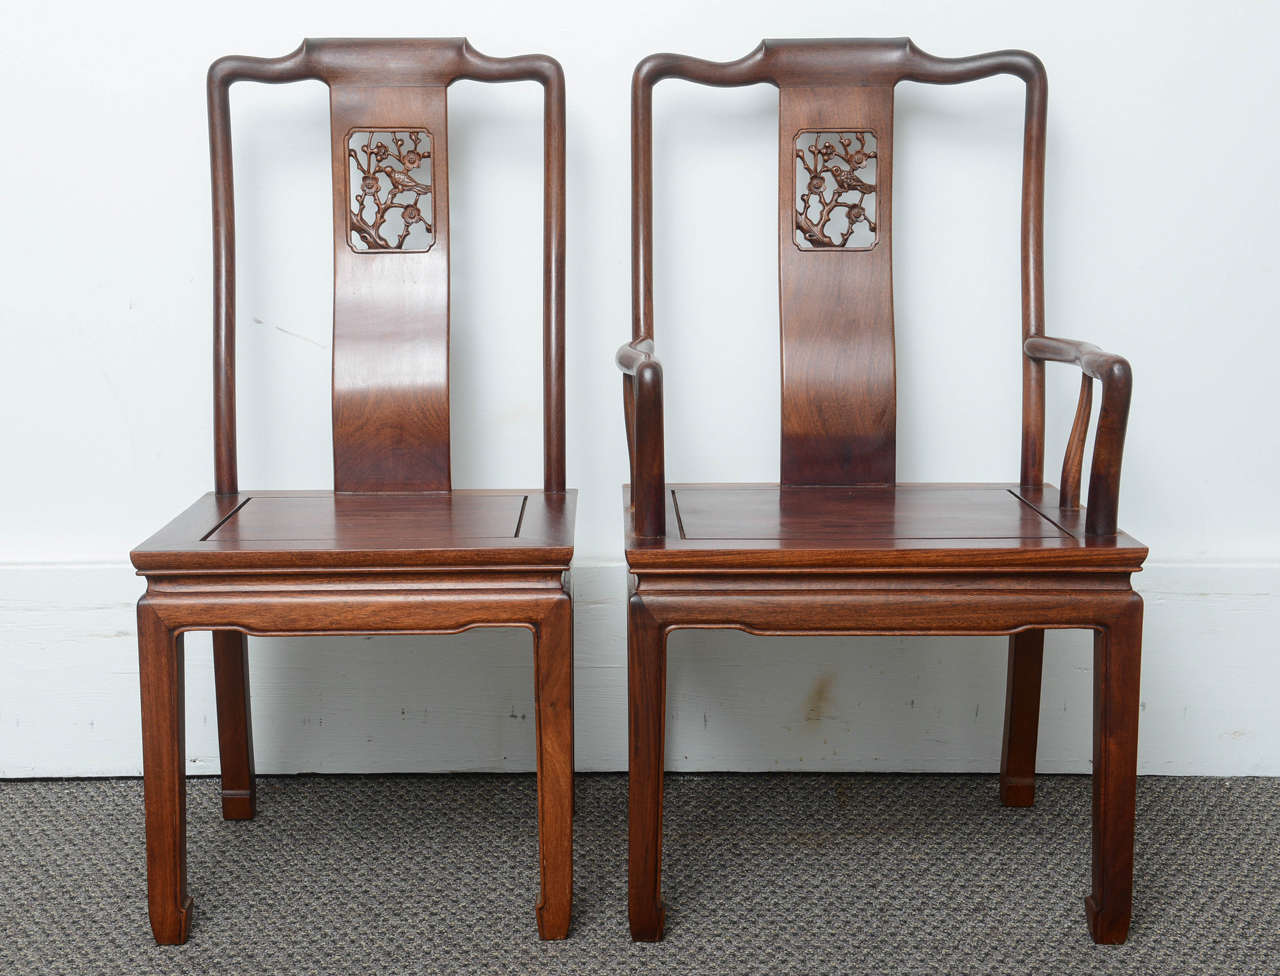 These are a very nice set of eight dining chairs consisting of two-arm  chairs - Set Of Eight Vintage Dining Chairs In The Asian Antique Style At 1stdibs